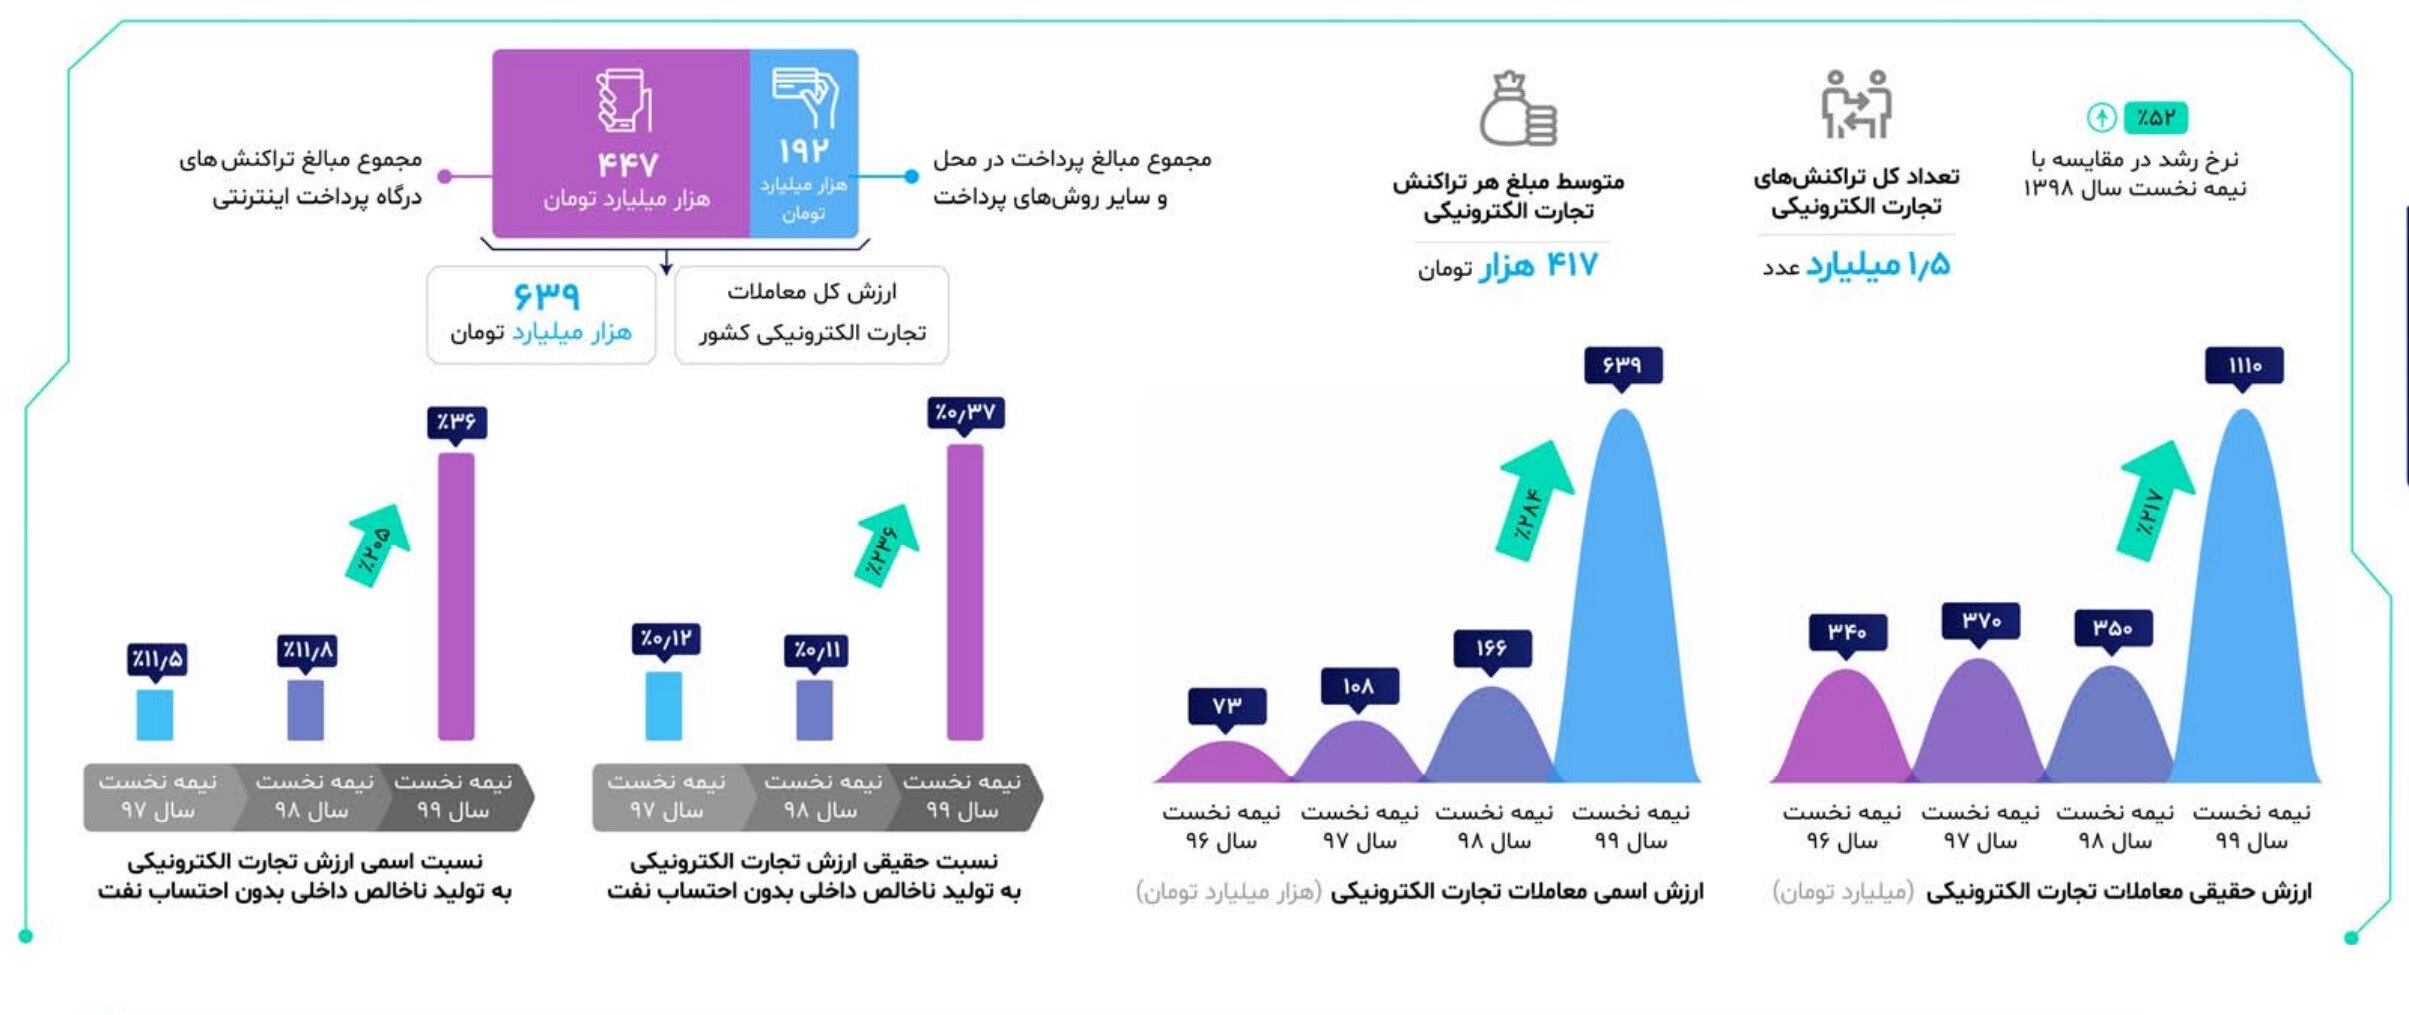 1611749042 574 The volume of e commerce in Iran in the first half The volume of e-commerce in Iran in the first half of 1999 reached 639 thousand billion tomans 2